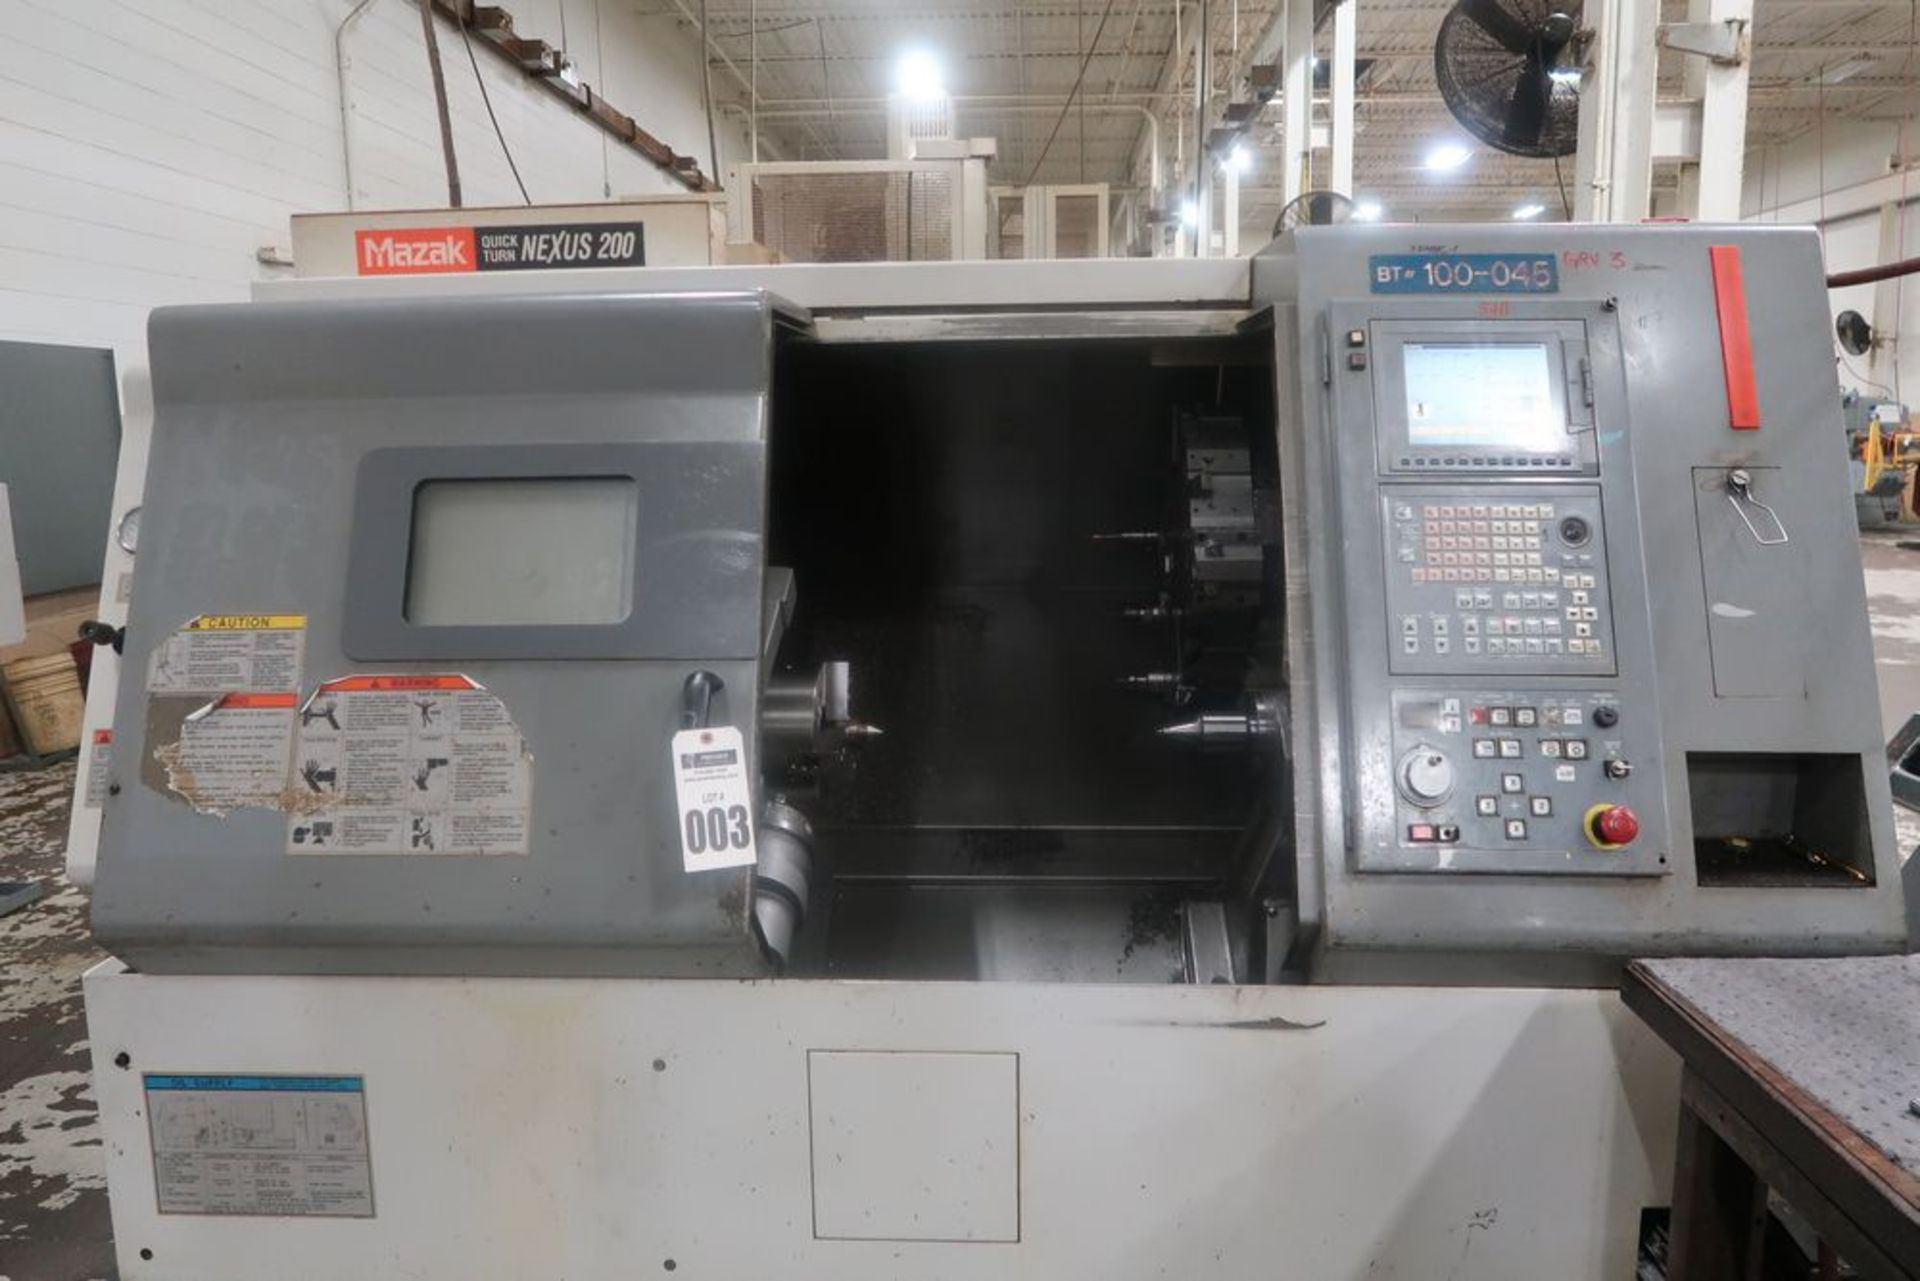 Lot 3 - Mazak Quick Turn Nexus 200 CNC 2-Axis Turning Center Lathe, S/n 162574